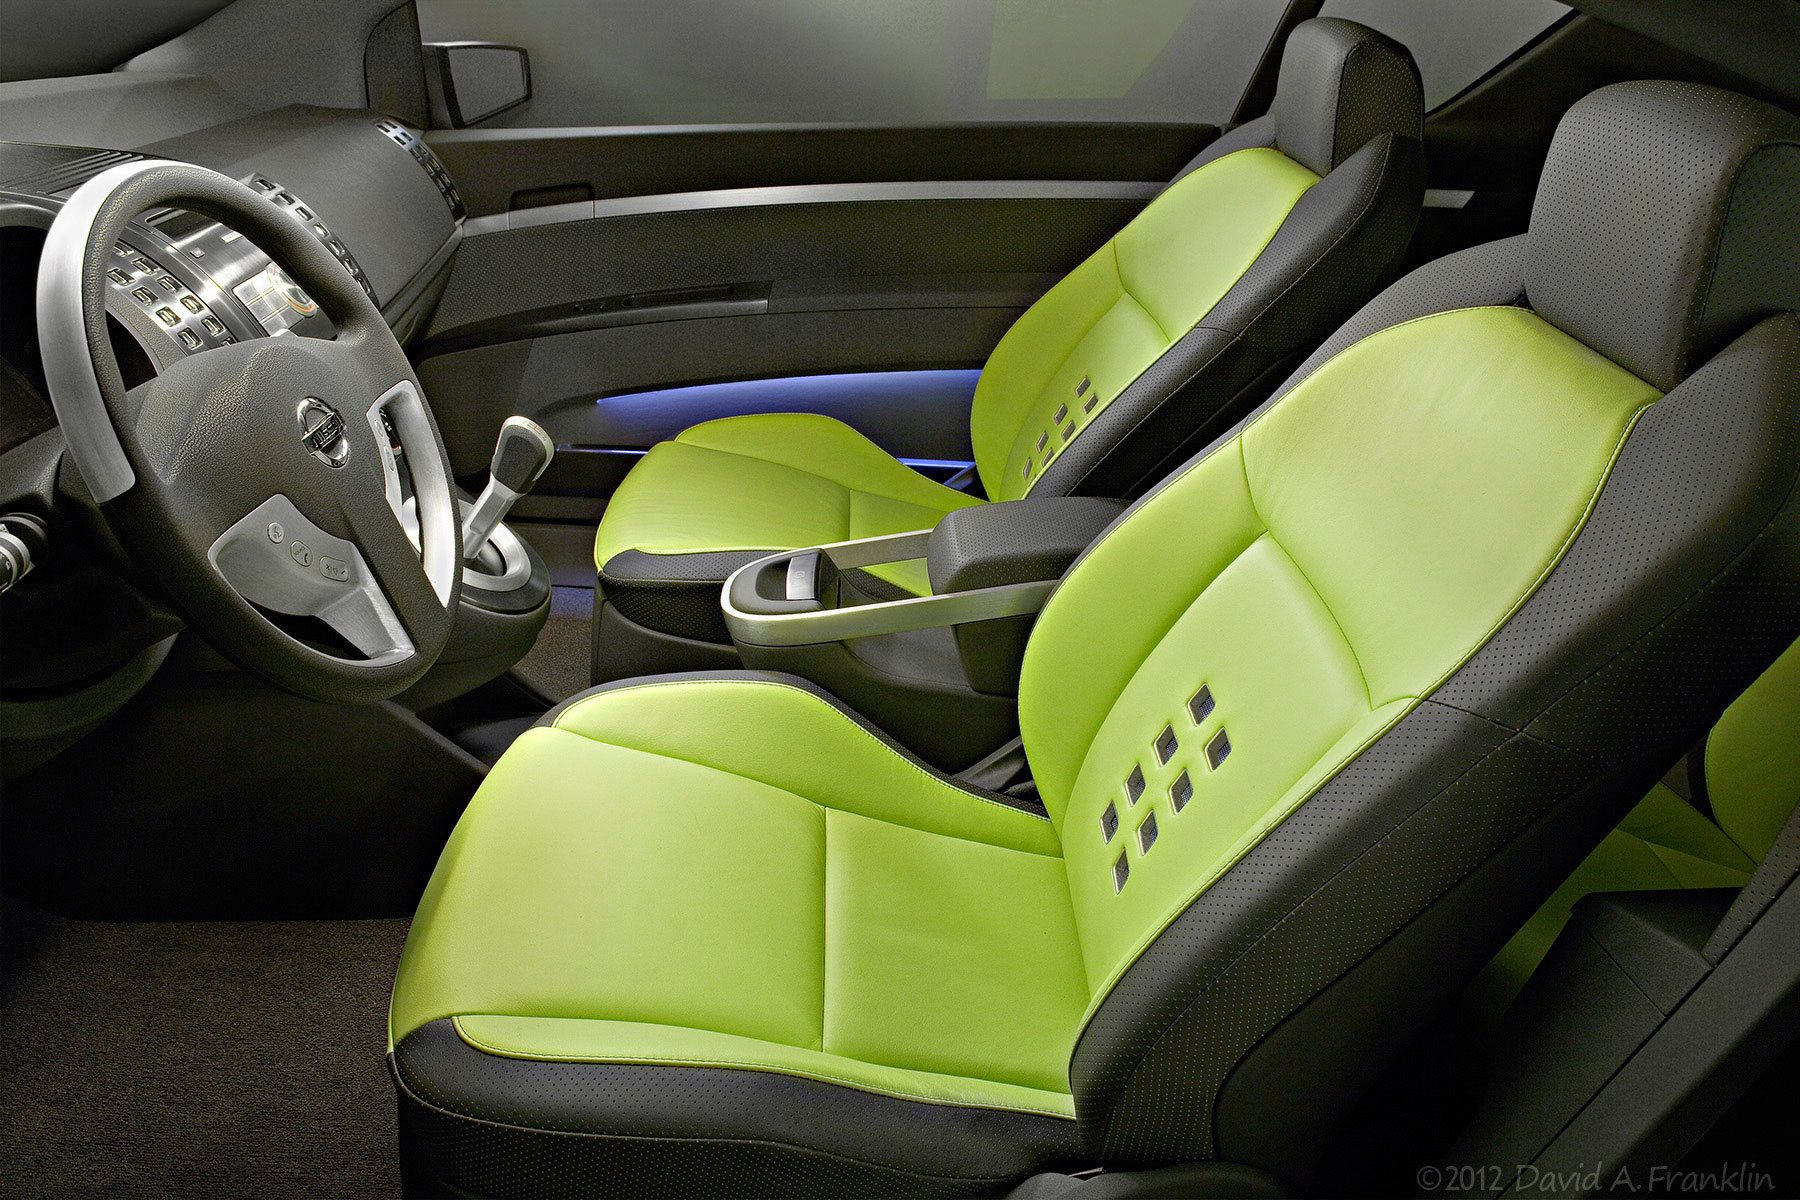 NissanAzeal_ShowCar_DriverSide_Look-In_Seats&IP_Interior_Studio